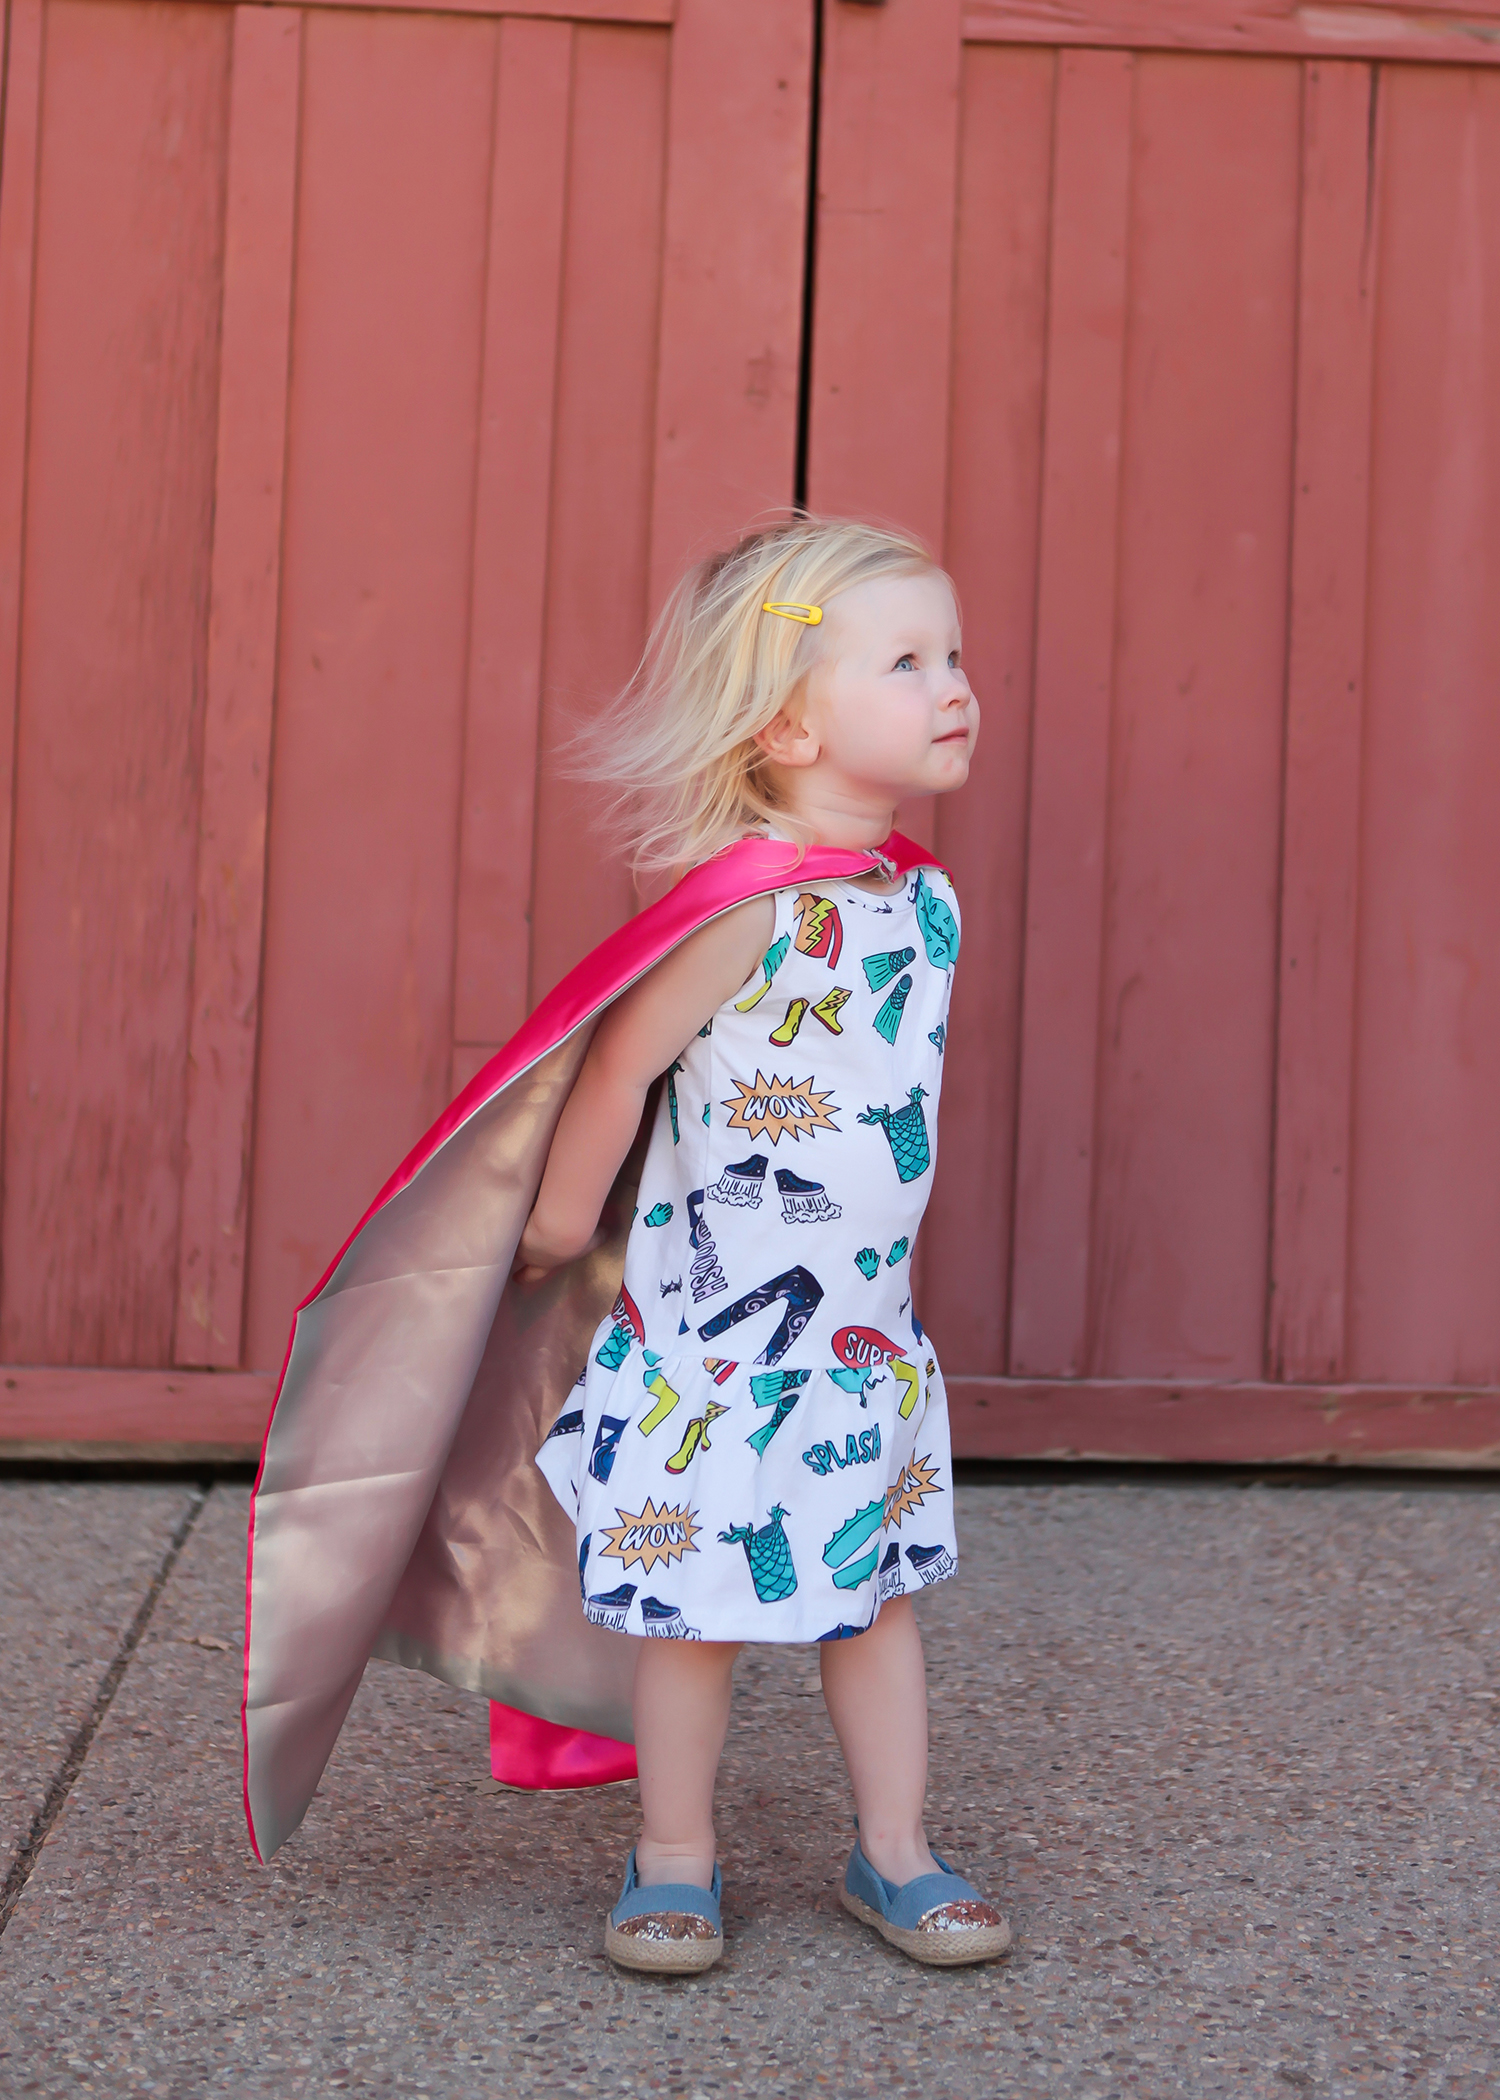 Want to encourage your toddler to be independent? These 5 tips will get them started!